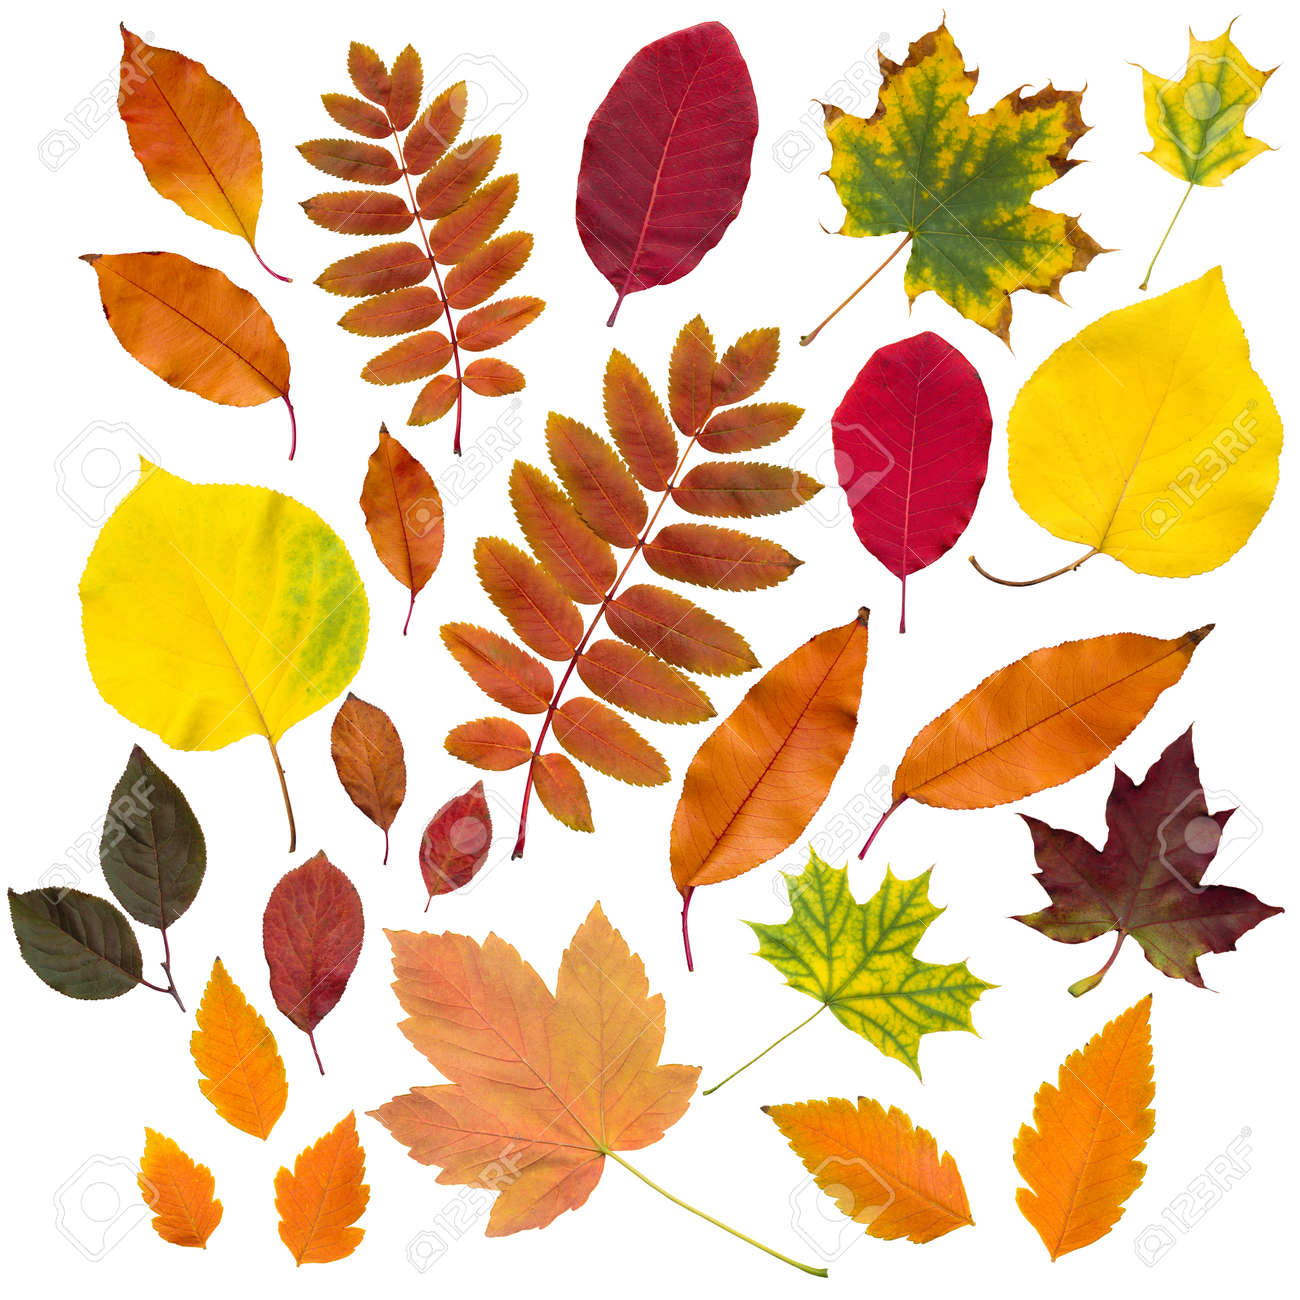 autumn leaves collection isolated on white background - 22379412